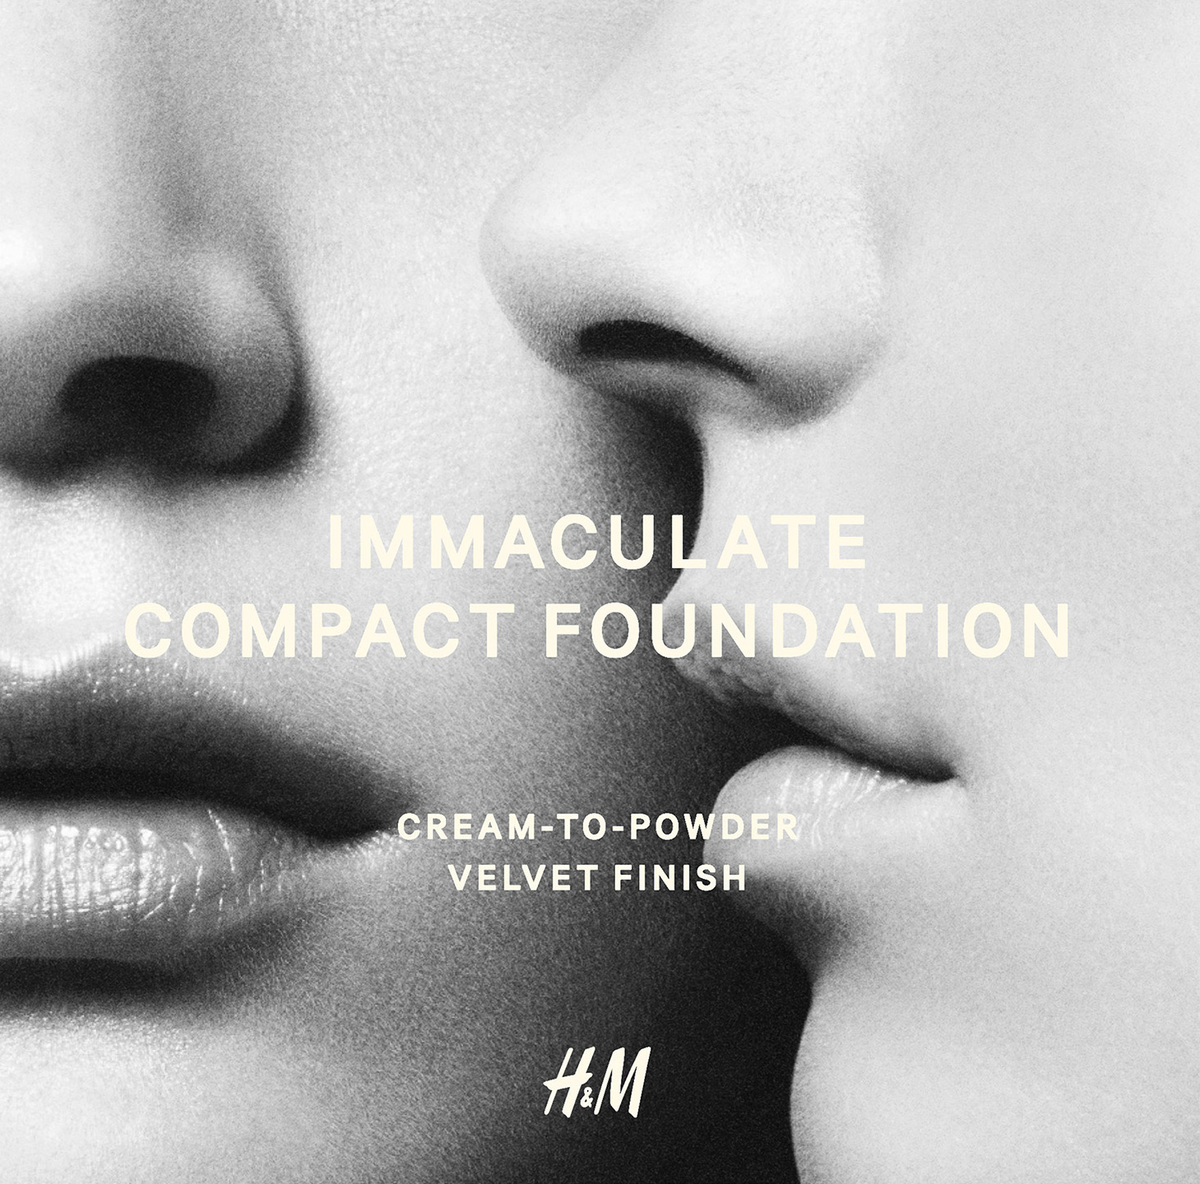 LUNDLUND : H&M Beauty